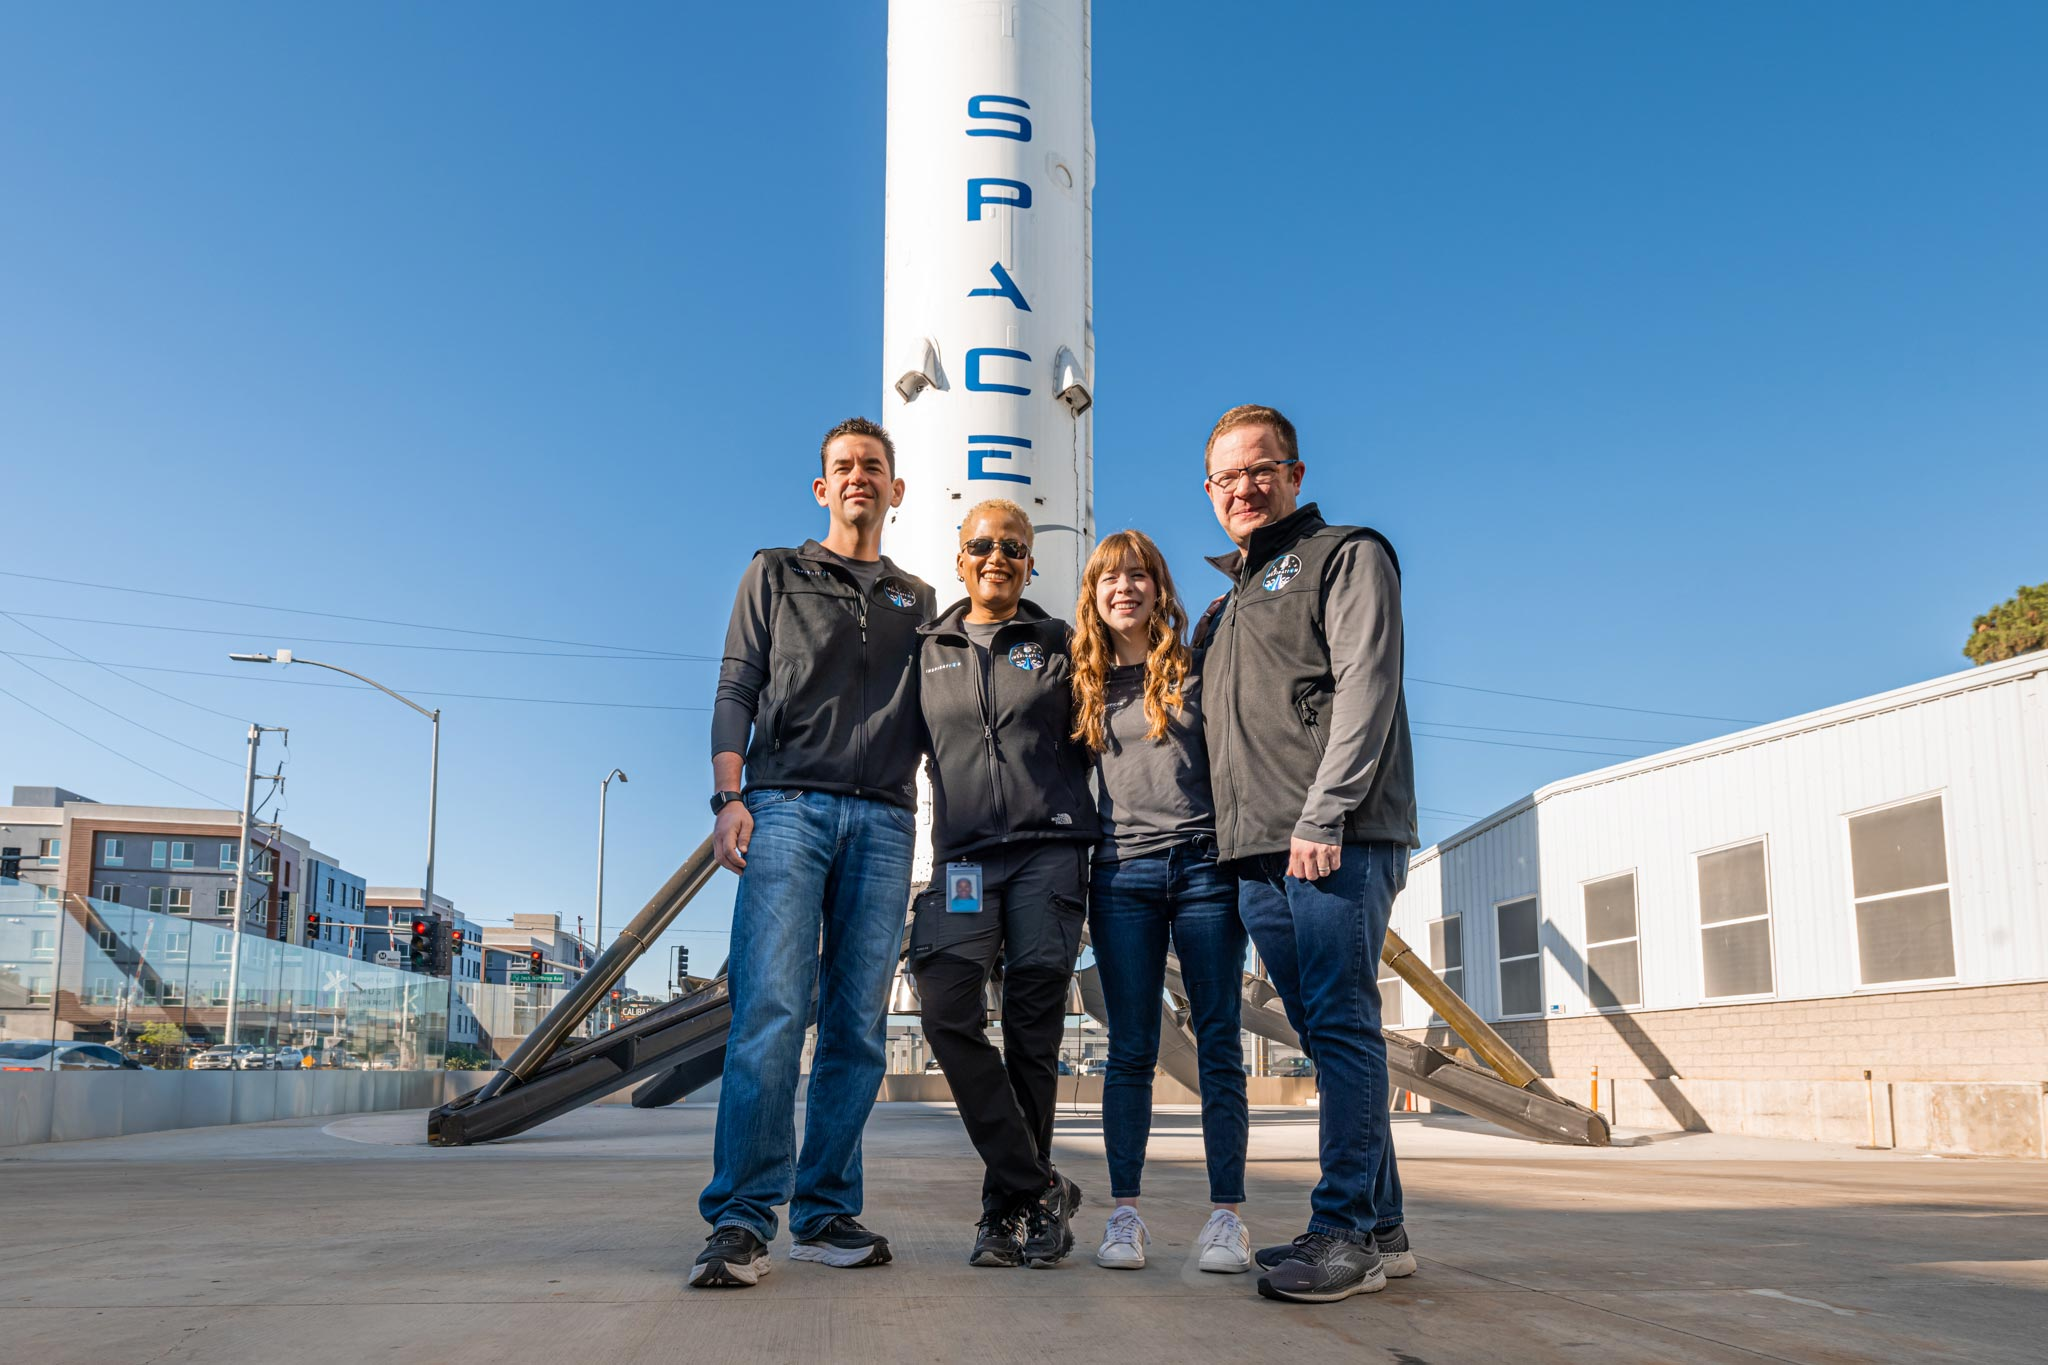 Space Tourism SpaceX Inspiration20 Mission Will Send 20 Civilians ...